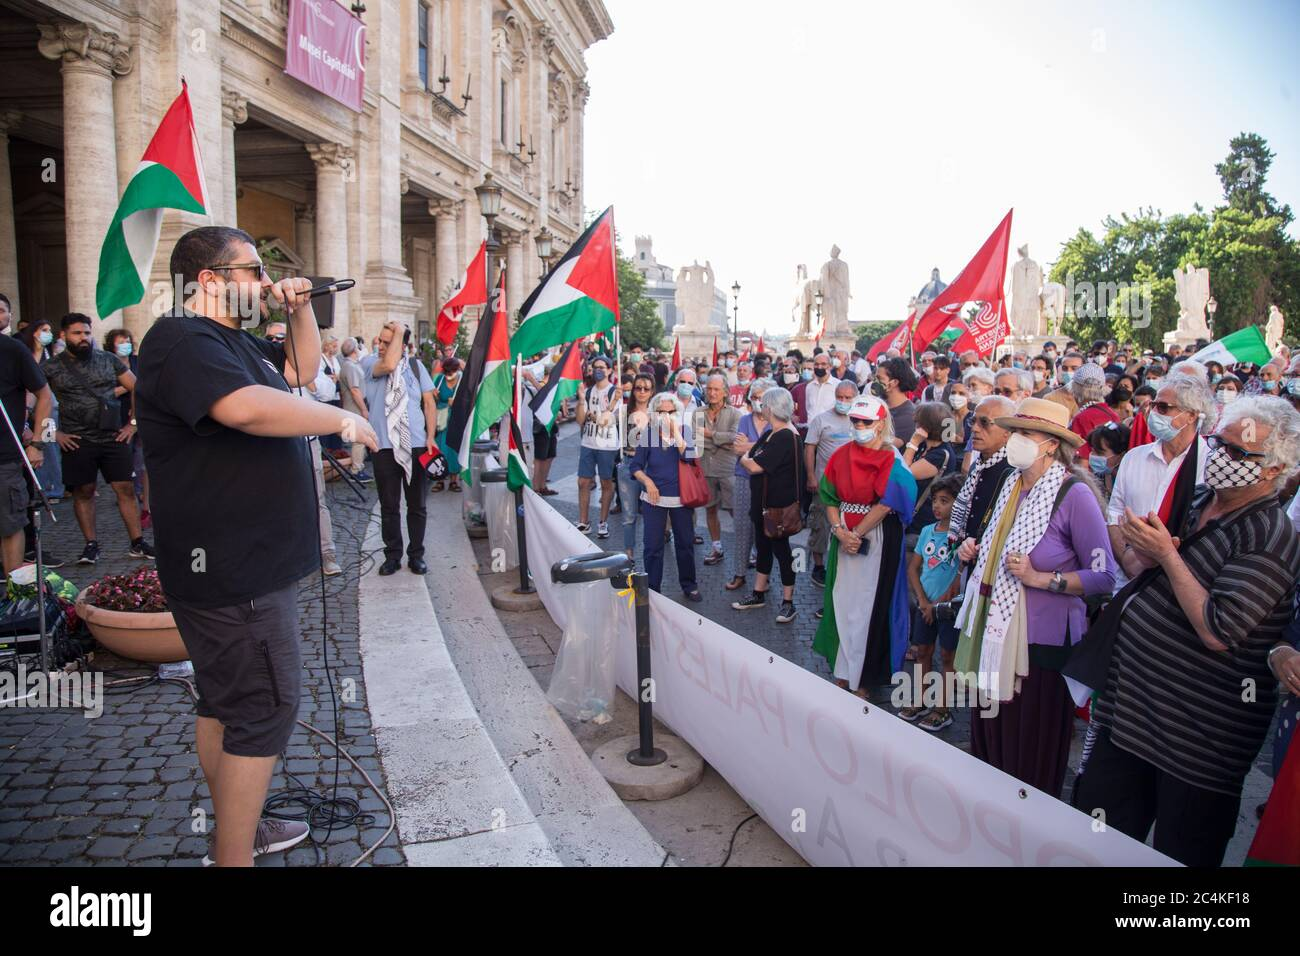 Roma, Italy. 27th June, 2020. (6/27/2020) Italian rapper Kento (Photo by Matteo Nardone/Pacific Press/Sipa USA) Credit: Sipa USA/Alamy Live News Stock Photo